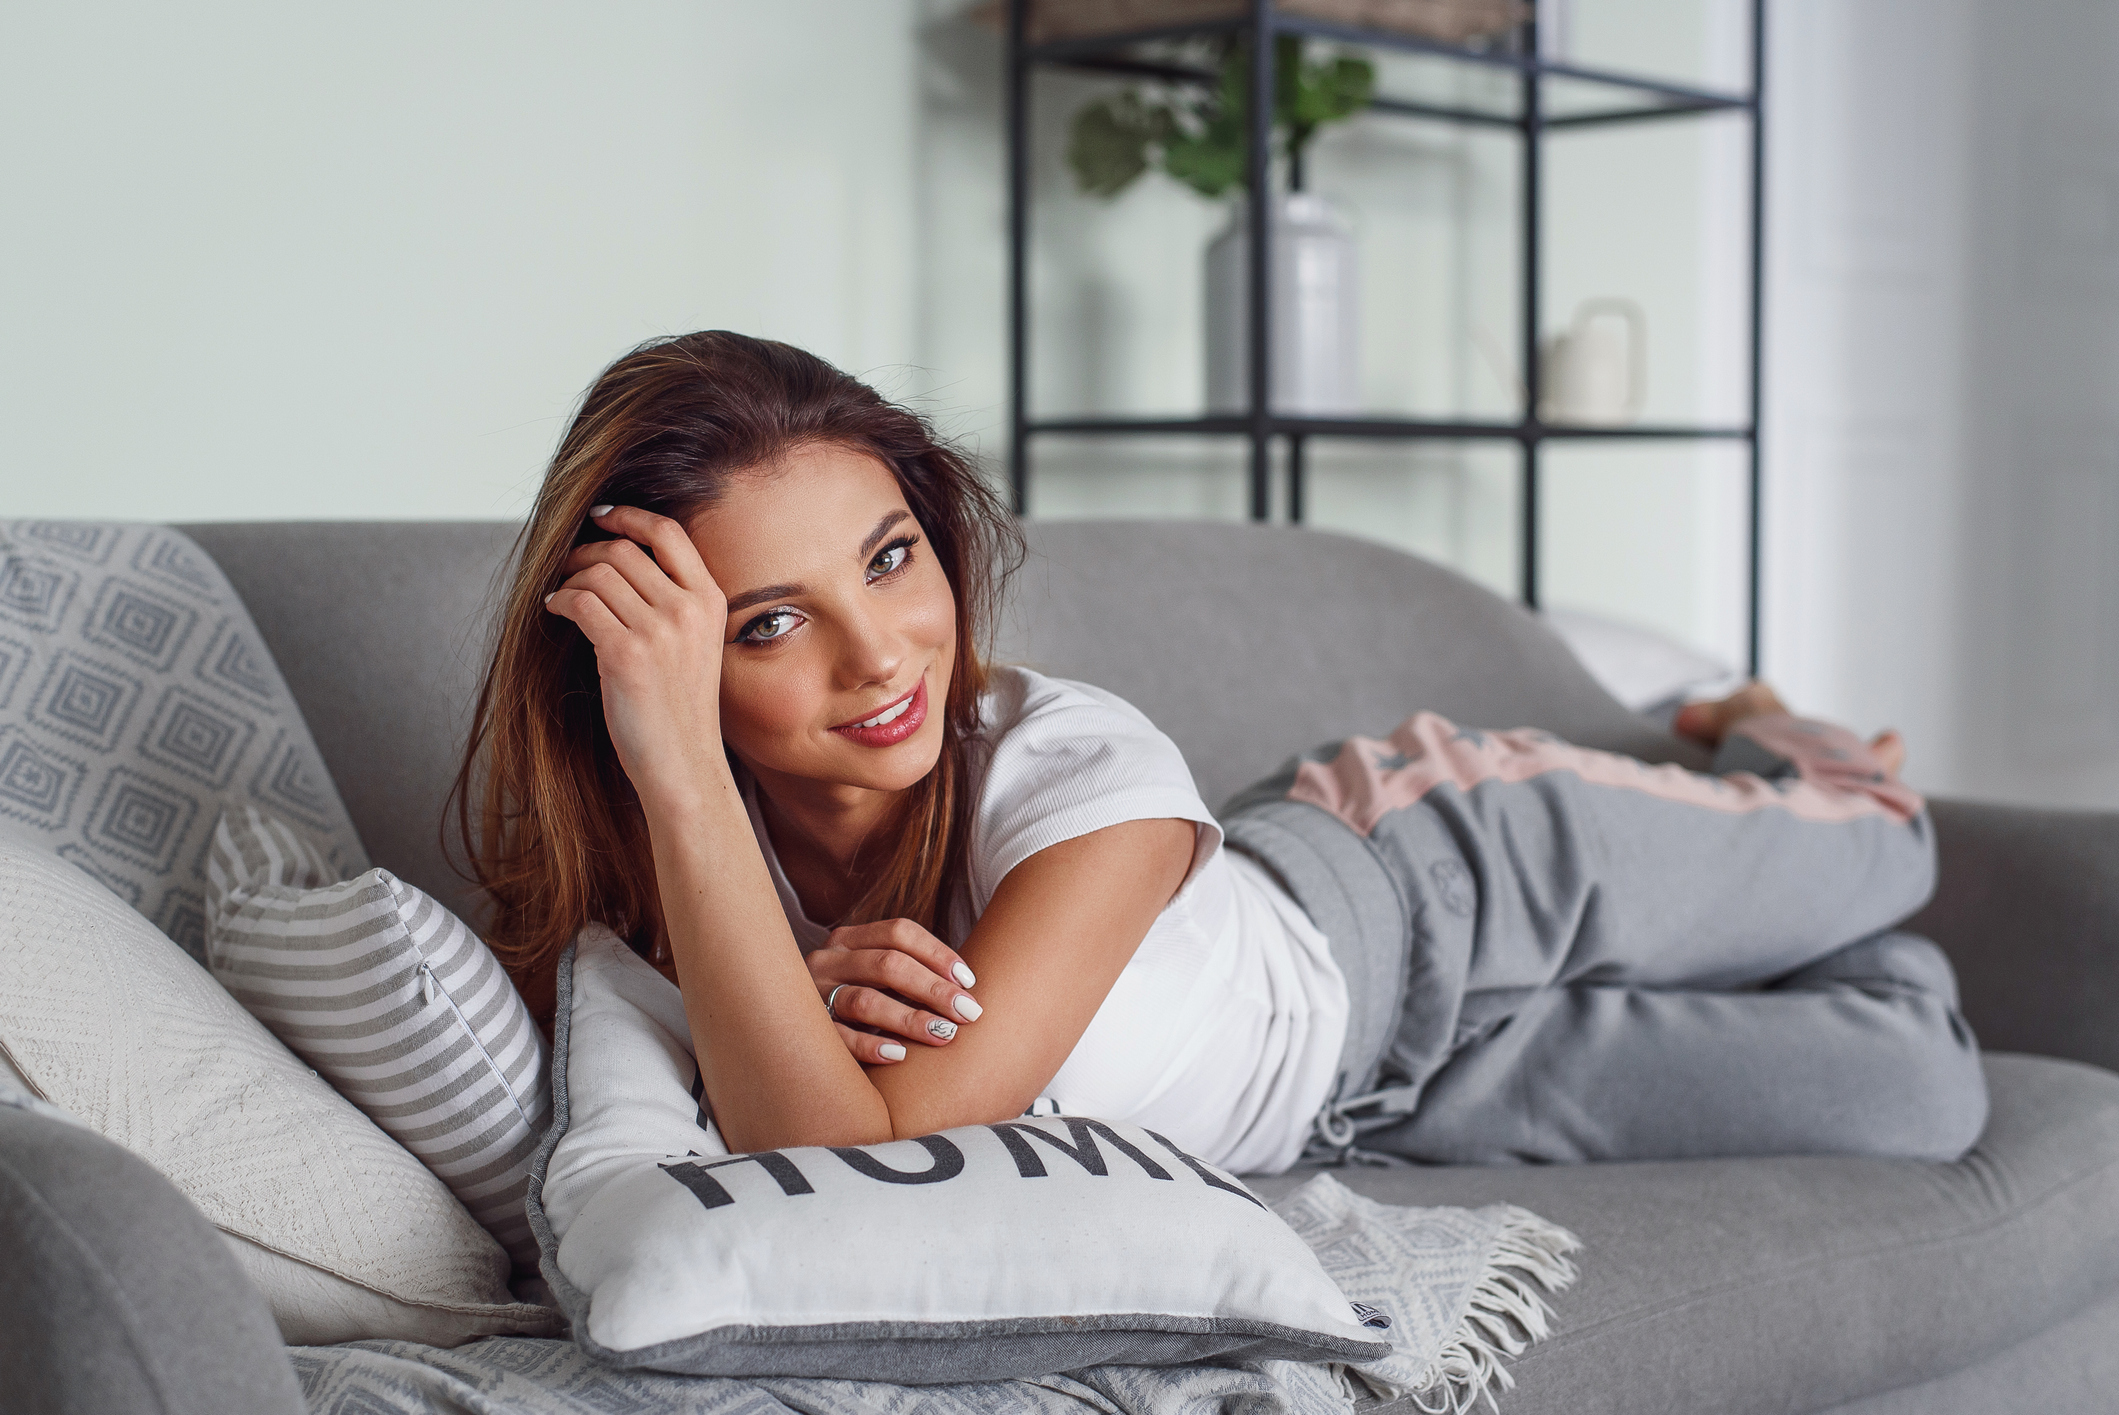 A pretty young woman with beautiful smile lies on grey couch with pillows at cozy home. Cute girl having rest at home in lazy day.